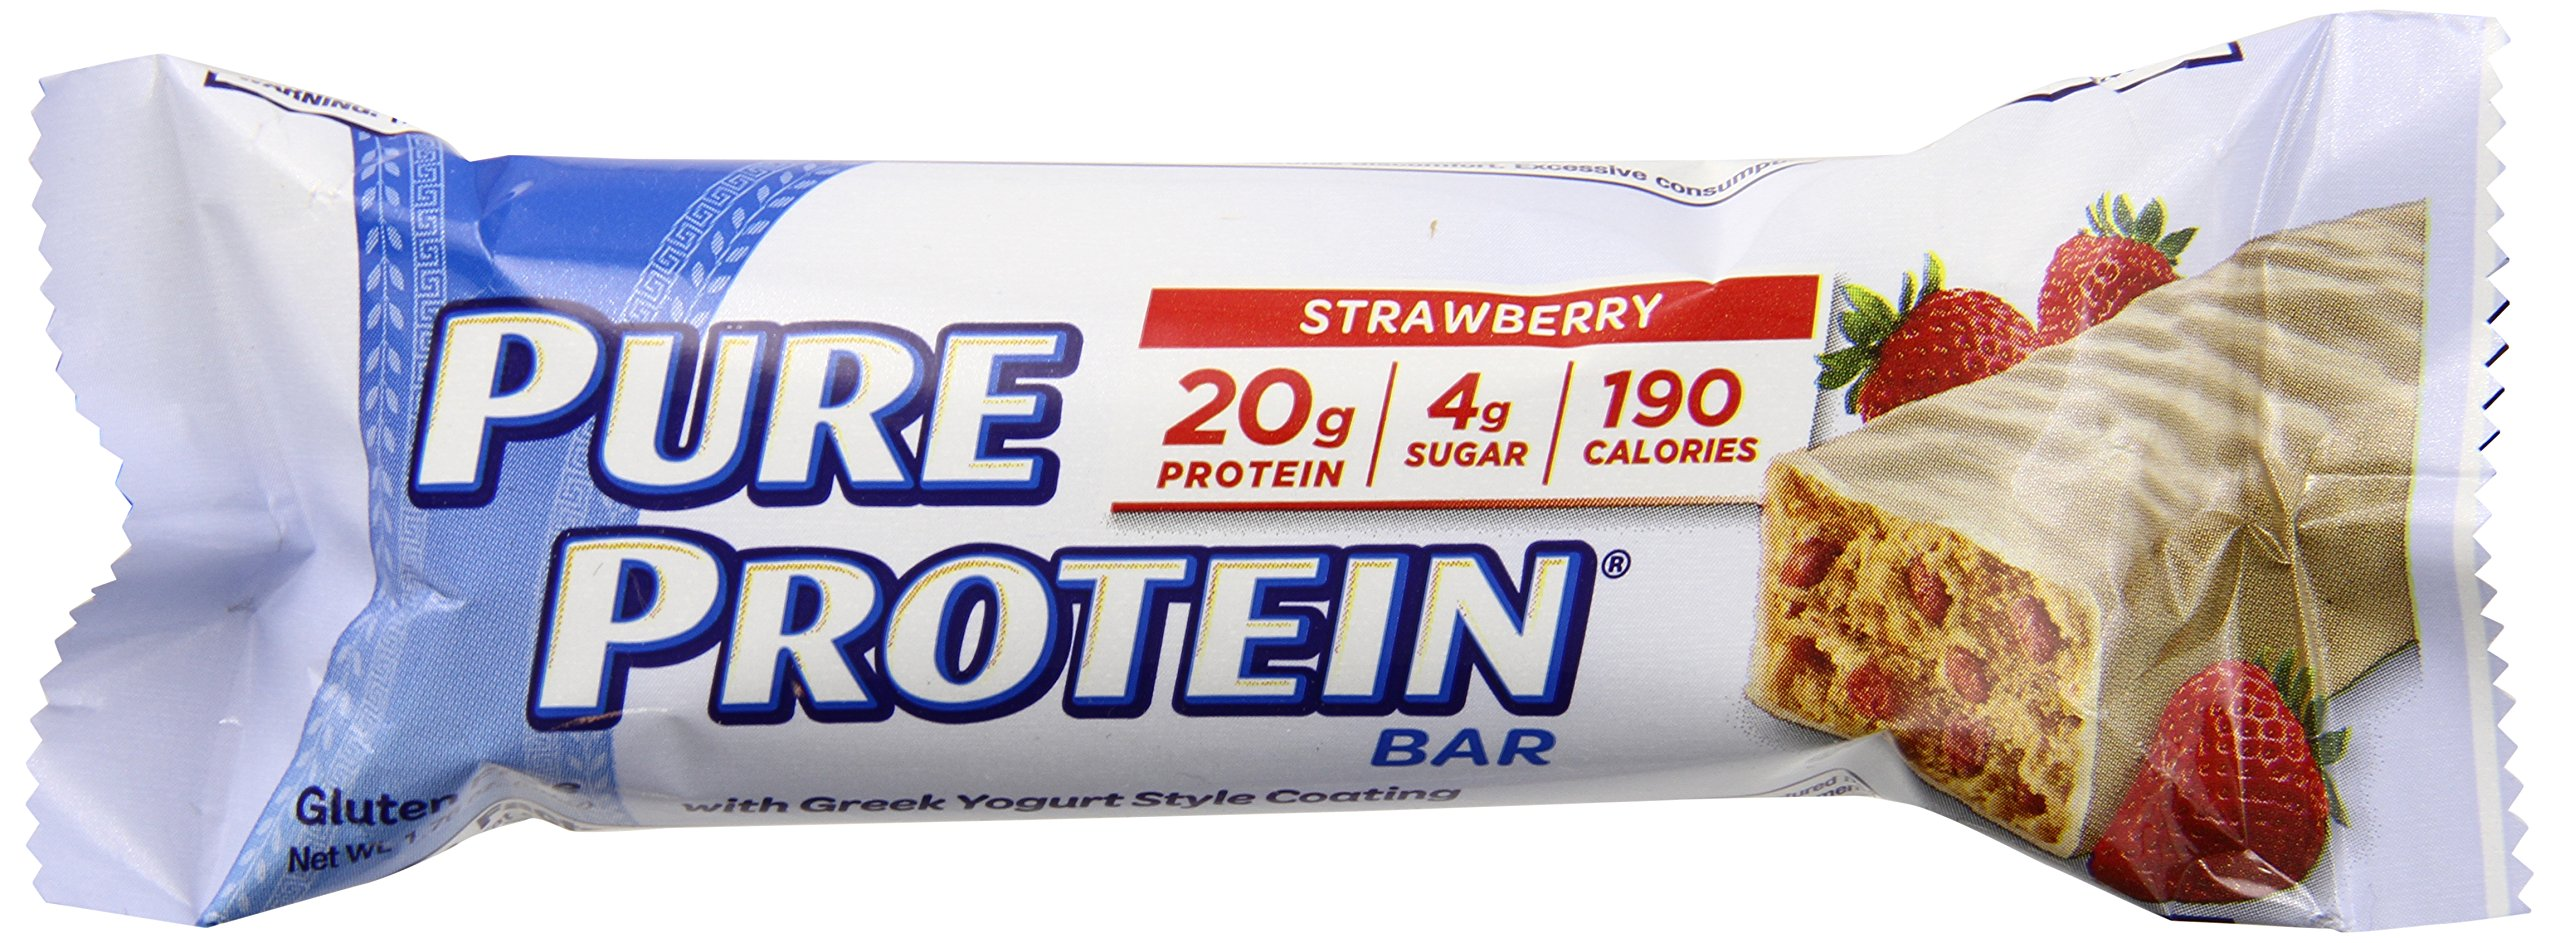 Pure Protein High Protein Bar Strawberry Greek Yogurt Protein Bars 20 Grams of Protein per Bar Gluten Free 6-2.75-Ounce Bars